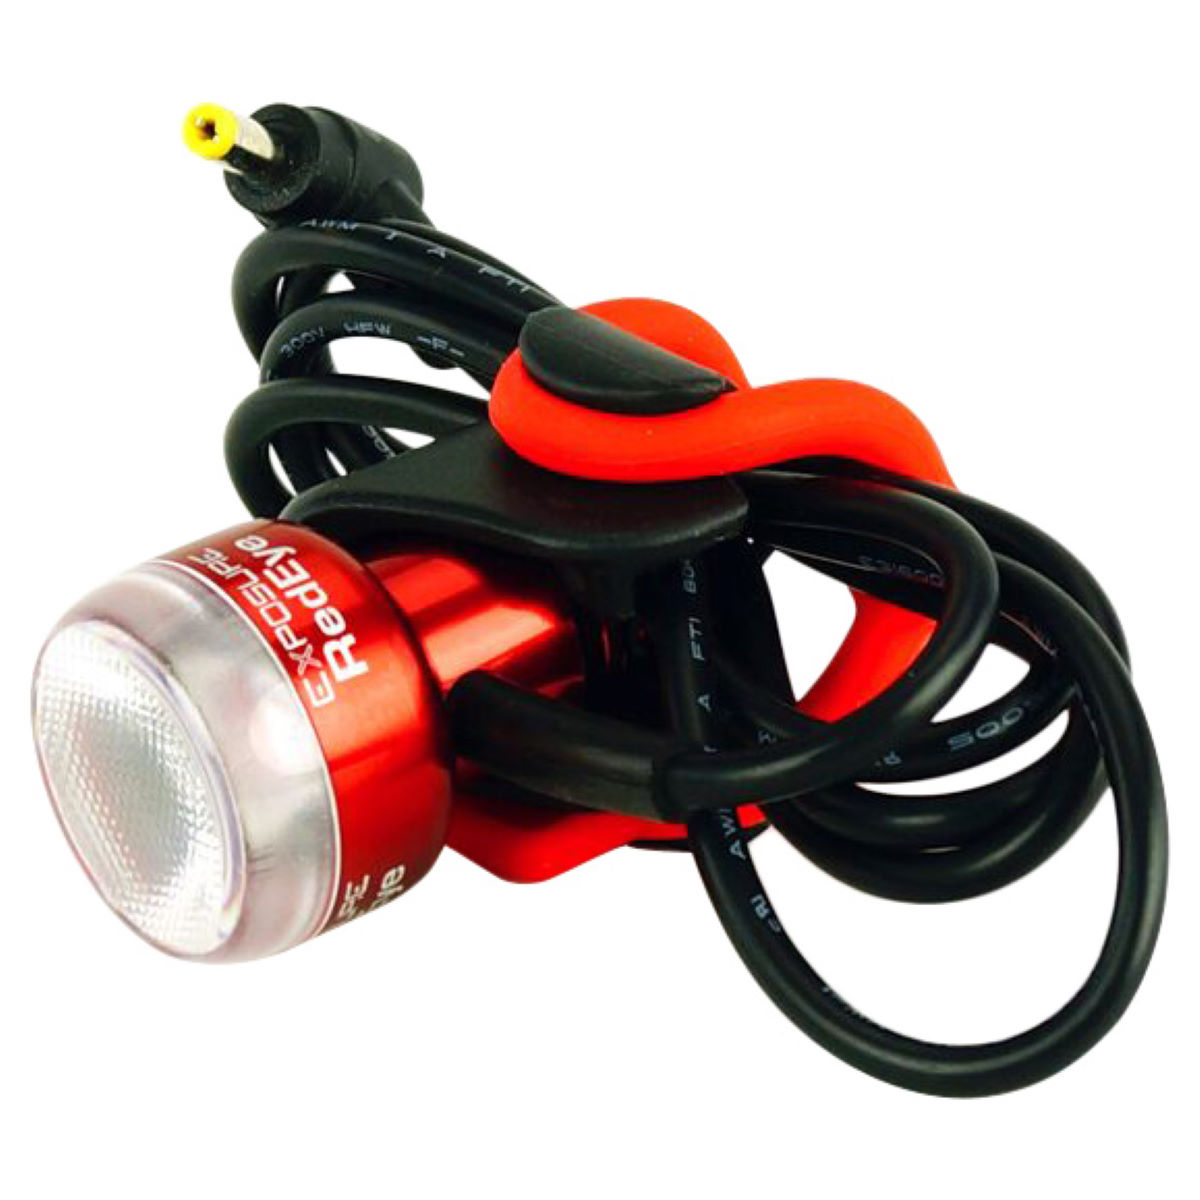 Exposure RedEye Rear Light with Long Cable